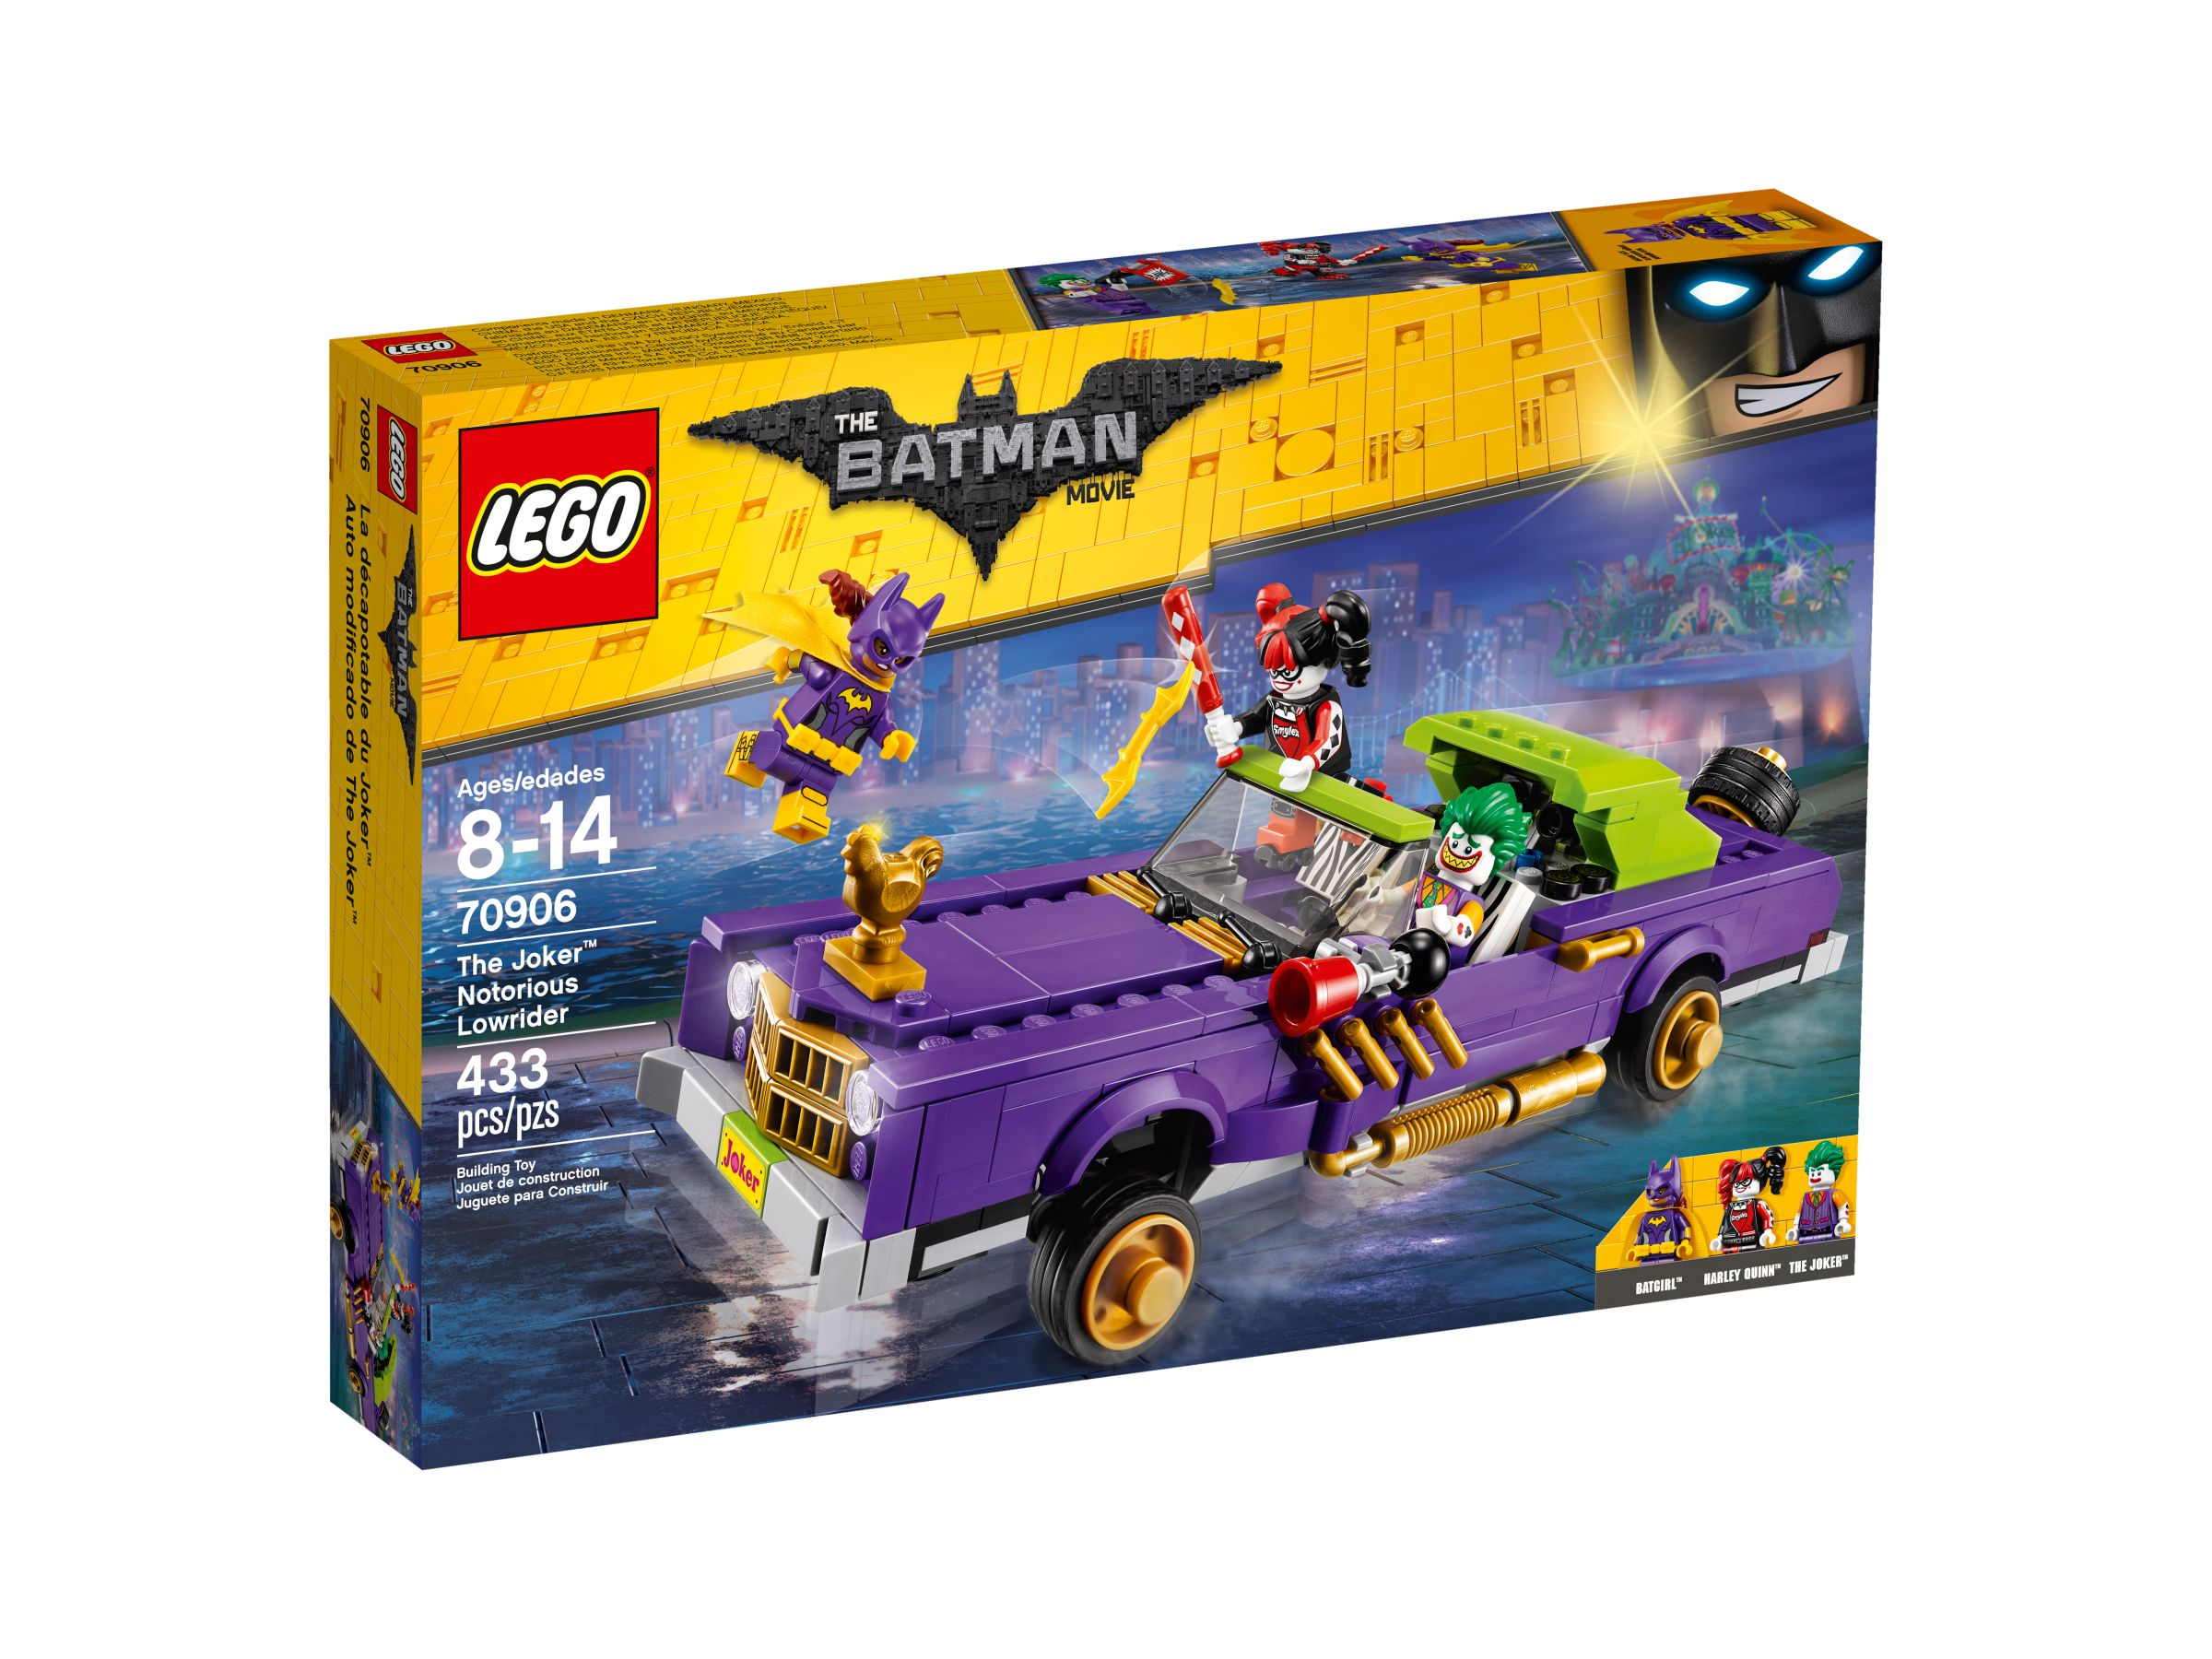 LEGO The LEGO Batman Movie 70906 Jokers berüchtigter Lowrider LEGO_70906_alt1.jpg